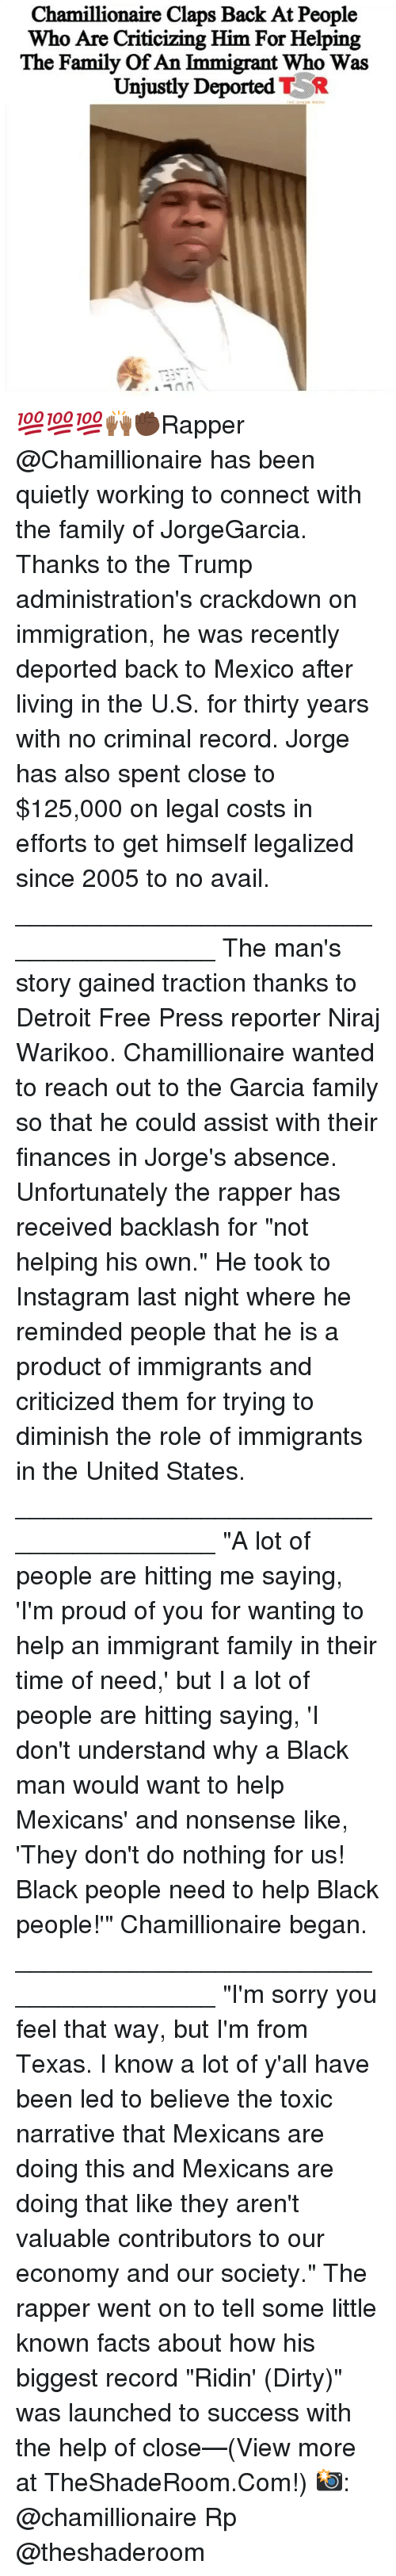 """Detroit, Facts, and Family: Chamillionaire Claps Back At People  Who Are Criticizing Him For Helping  The Family Of An Immigrant Who Was  Unjustly Deported TR 💯💯💯🙌🏾✊🏿Rapper @Chamillionaire has been quietly working to connect with the family of JorgeGarcia. Thanks to the Trump administration's crackdown on immigration, he was recently deported back to Mexico after living in the U.S. for thirty years with no criminal record. Jorge has also spent close to $125,000 on legal costs in efforts to get himself legalized since 2005 to no avail. _______________________________________ The man's story gained traction thanks to Detroit Free Press reporter Niraj Warikoo. Chamillionaire wanted to reach out to the Garcia family so that he could assist with their finances in Jorge's absence. Unfortunately the rapper has received backlash for """"not helping his own."""" He took to Instagram last night where he reminded people that he is a product of immigrants and criticized them for trying to diminish the role of immigrants in the United States. _______________________________________ """"A lot of people are hitting me saying, 'I'm proud of you for wanting to help an immigrant family in their time of need,' but I a lot of people are hitting saying, 'I don't understand why a Black man would want to help Mexicans' and nonsense like, 'They don't do nothing for us! Black people need to help Black people!'"""" Chamillionaire began. _______________________________________ """"I'm sorry you feel that way, but I'm from Texas. I know a lot of y'all have been led to believe the toxic narrative that Mexicans are doing this and Mexicans are doing that like they aren't valuable contributors to our economy and our society."""" The rapper went on to tell some little known facts about how his biggest record """"Ridin' (Dirty)"""" was launched to success with the help of close—(View more at TheShadeRoom.Com!) 📸: @chamillionaire Rp @theshaderoom"""